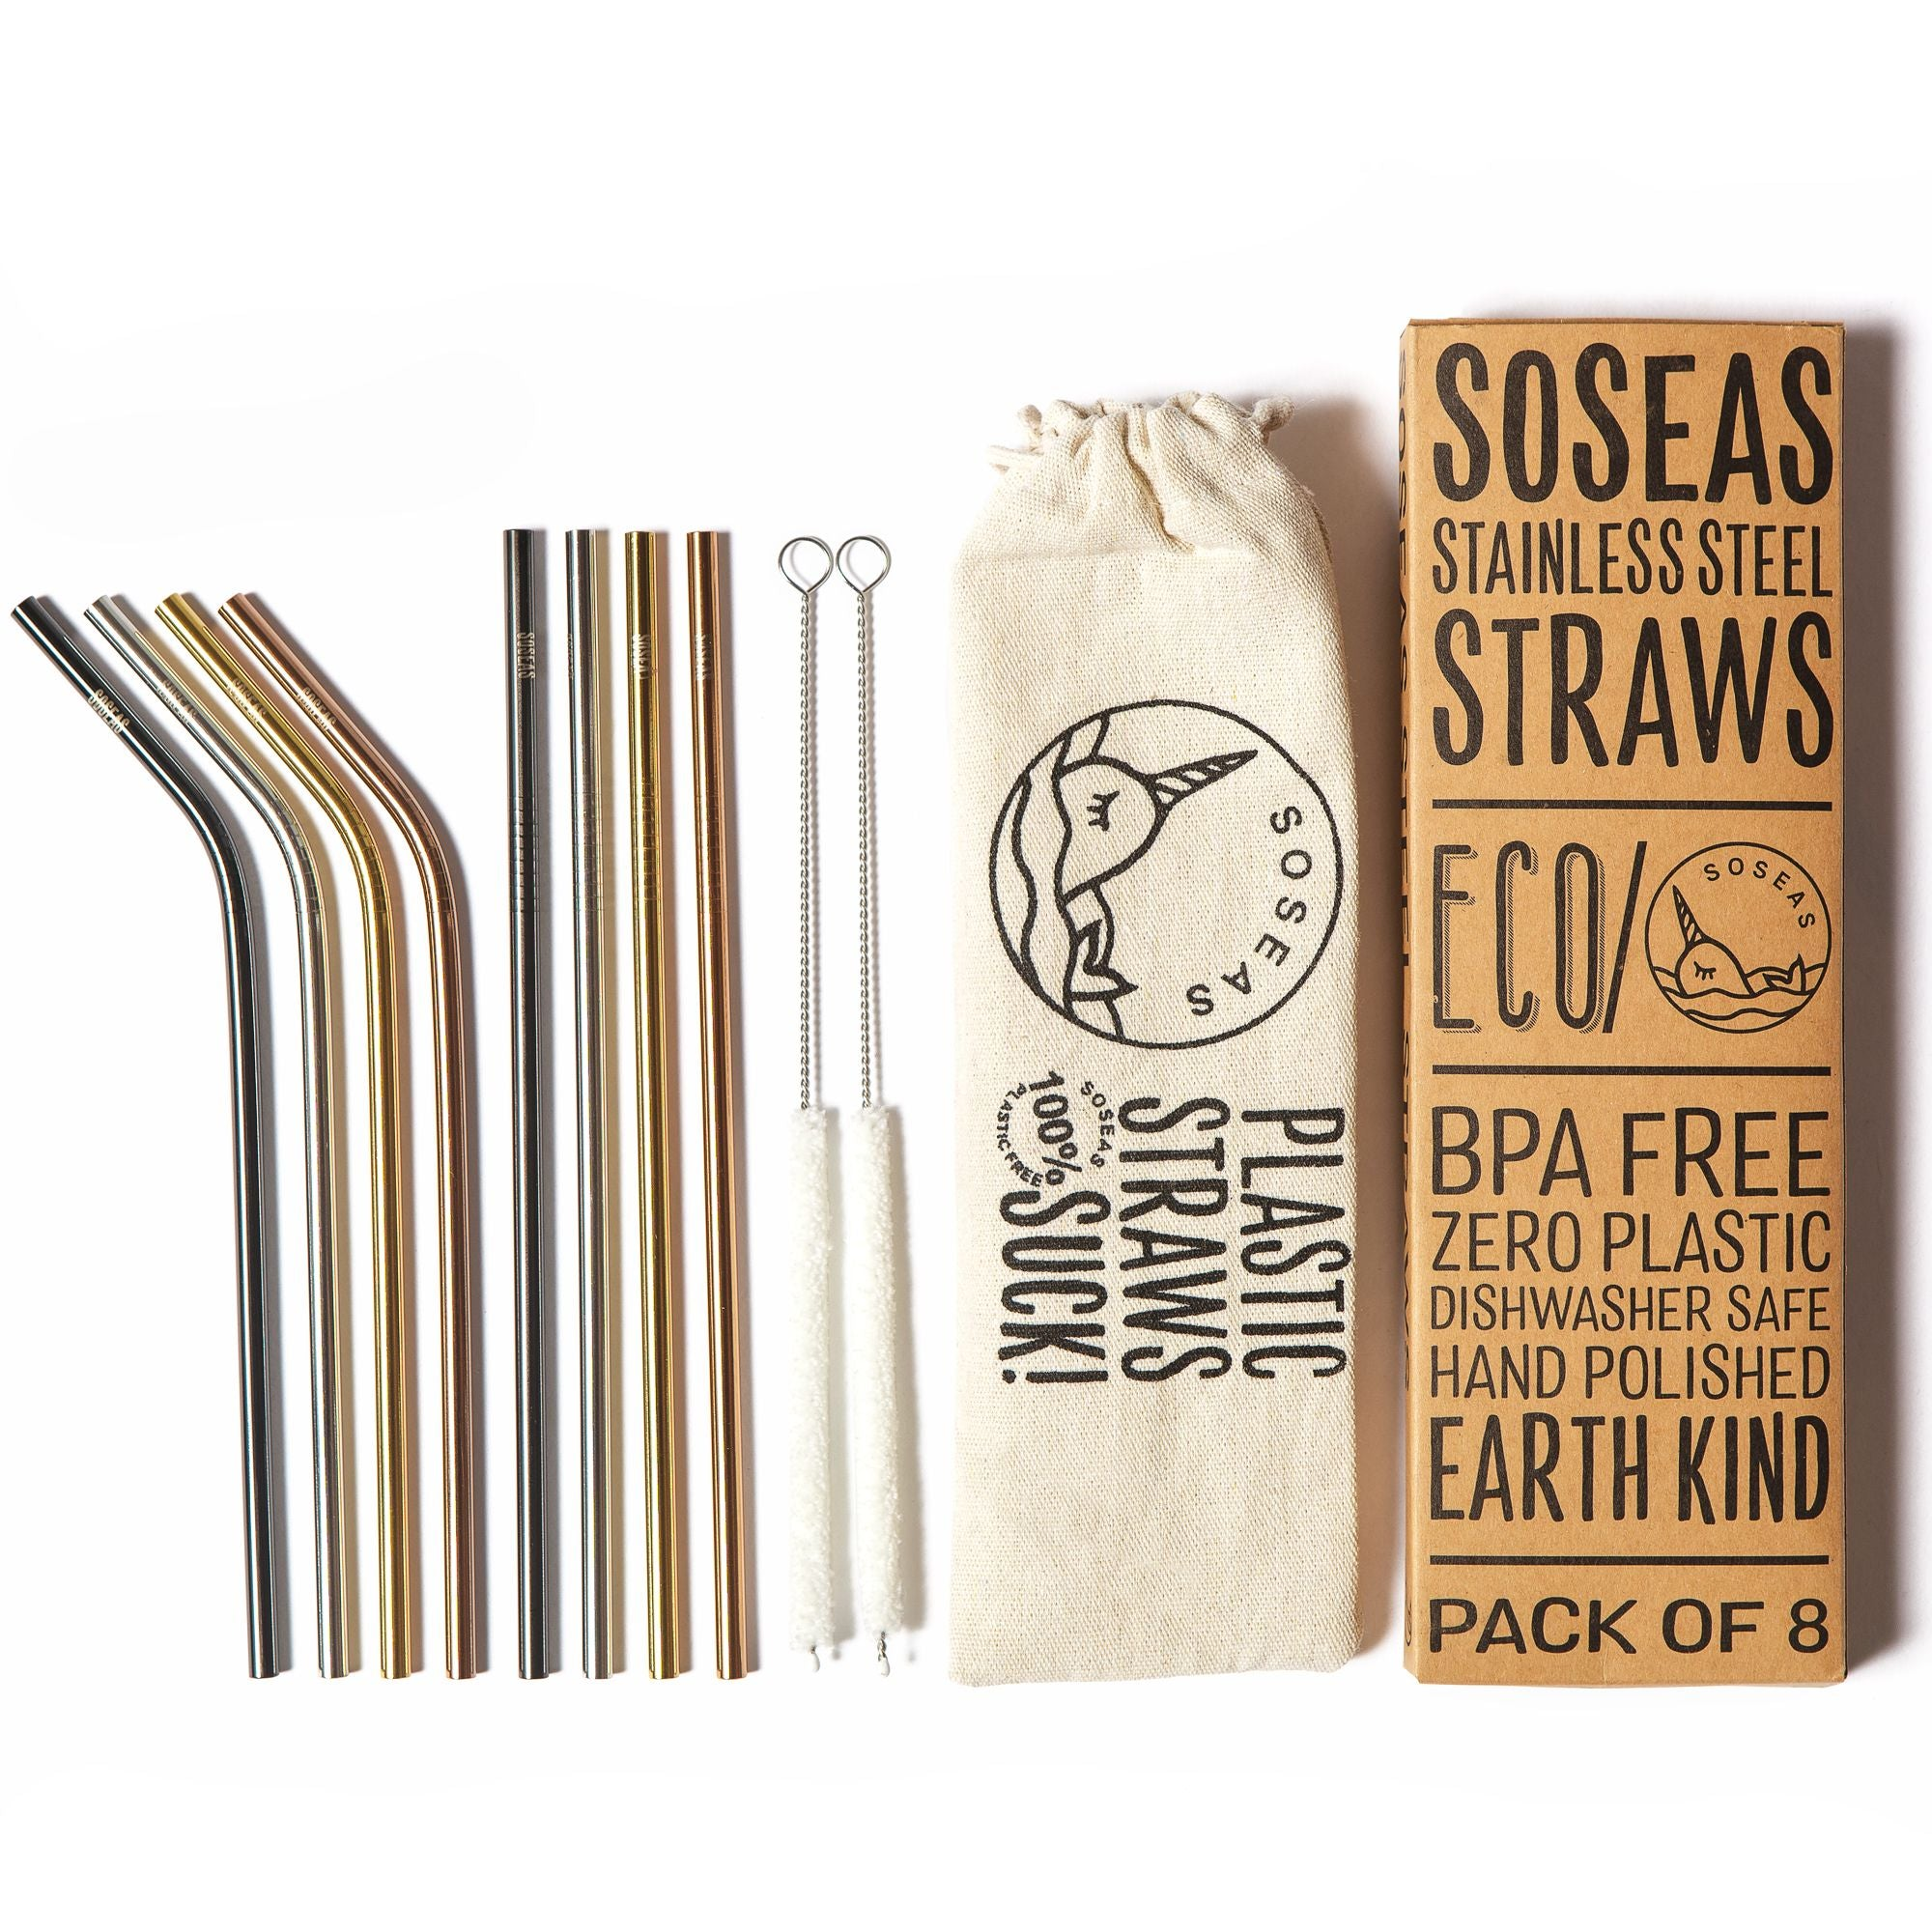 Reusable Stainless Steel Straws 8 Pack